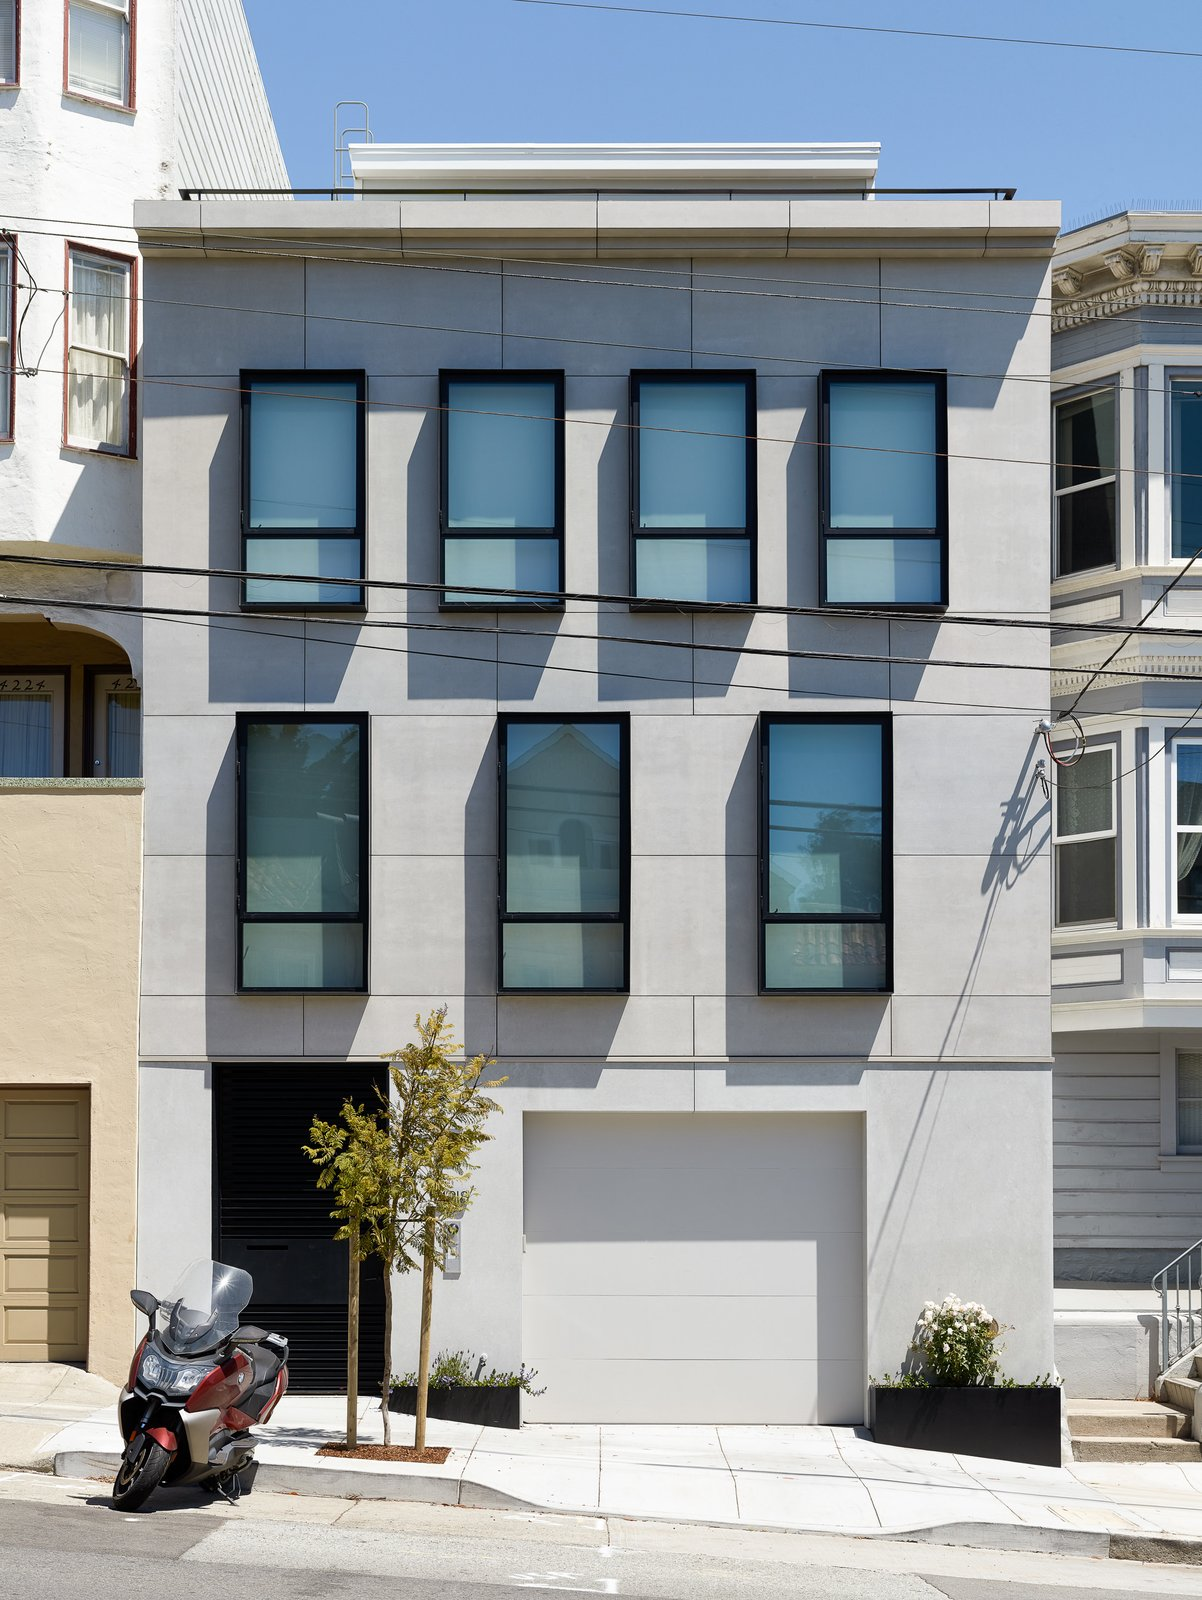 Exterior and Apartment Building Type  Noe Valley III by Feldman Architecture